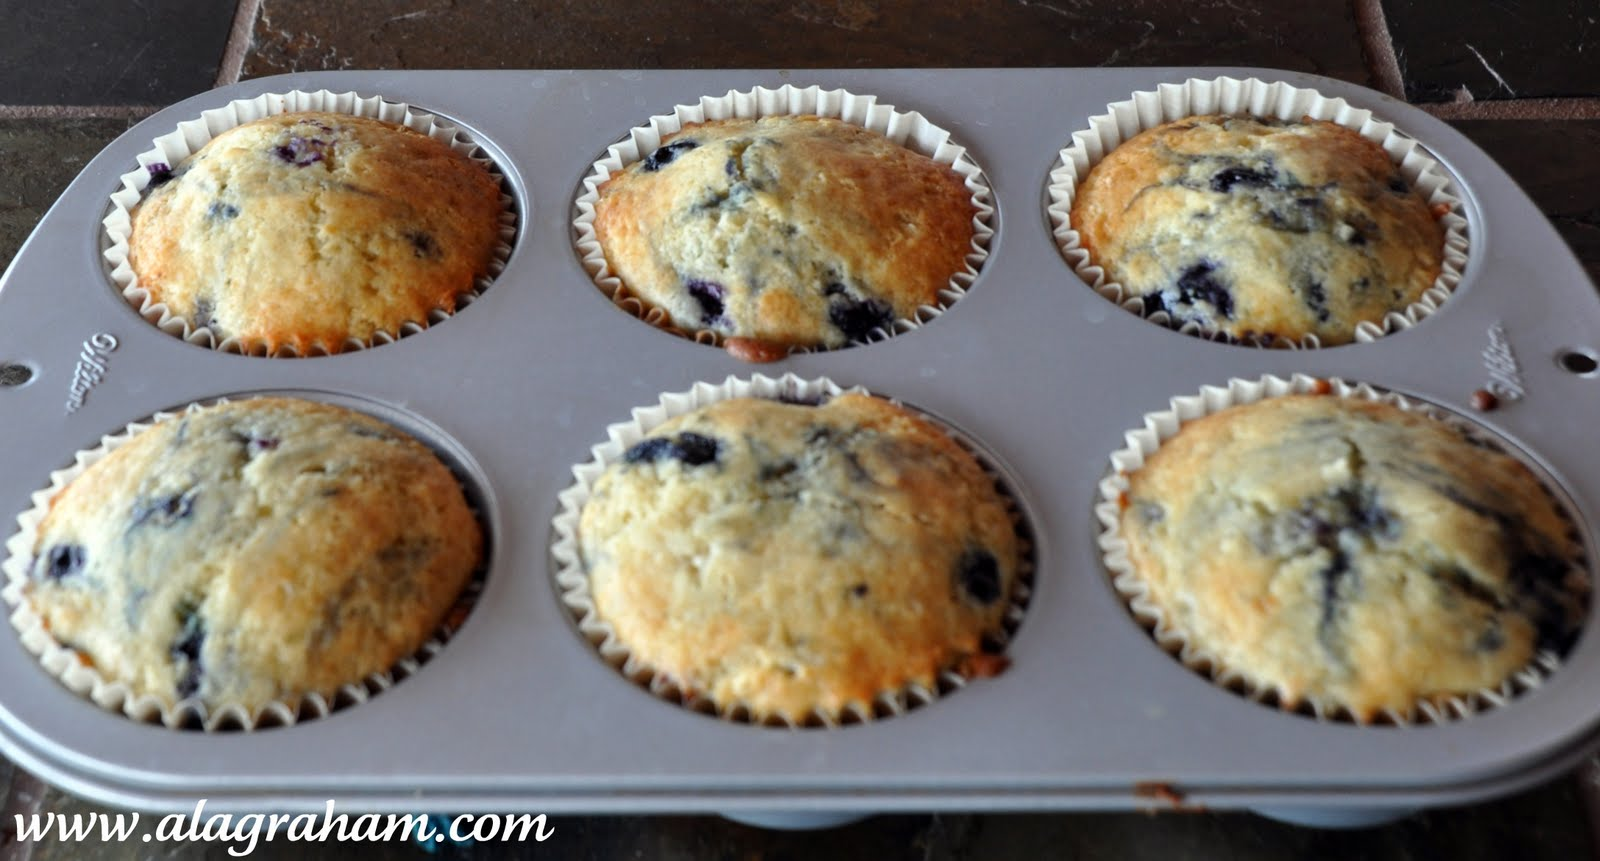 LA GRAHAM: BLUEBERRY COFFEE CAKE MUFFINS